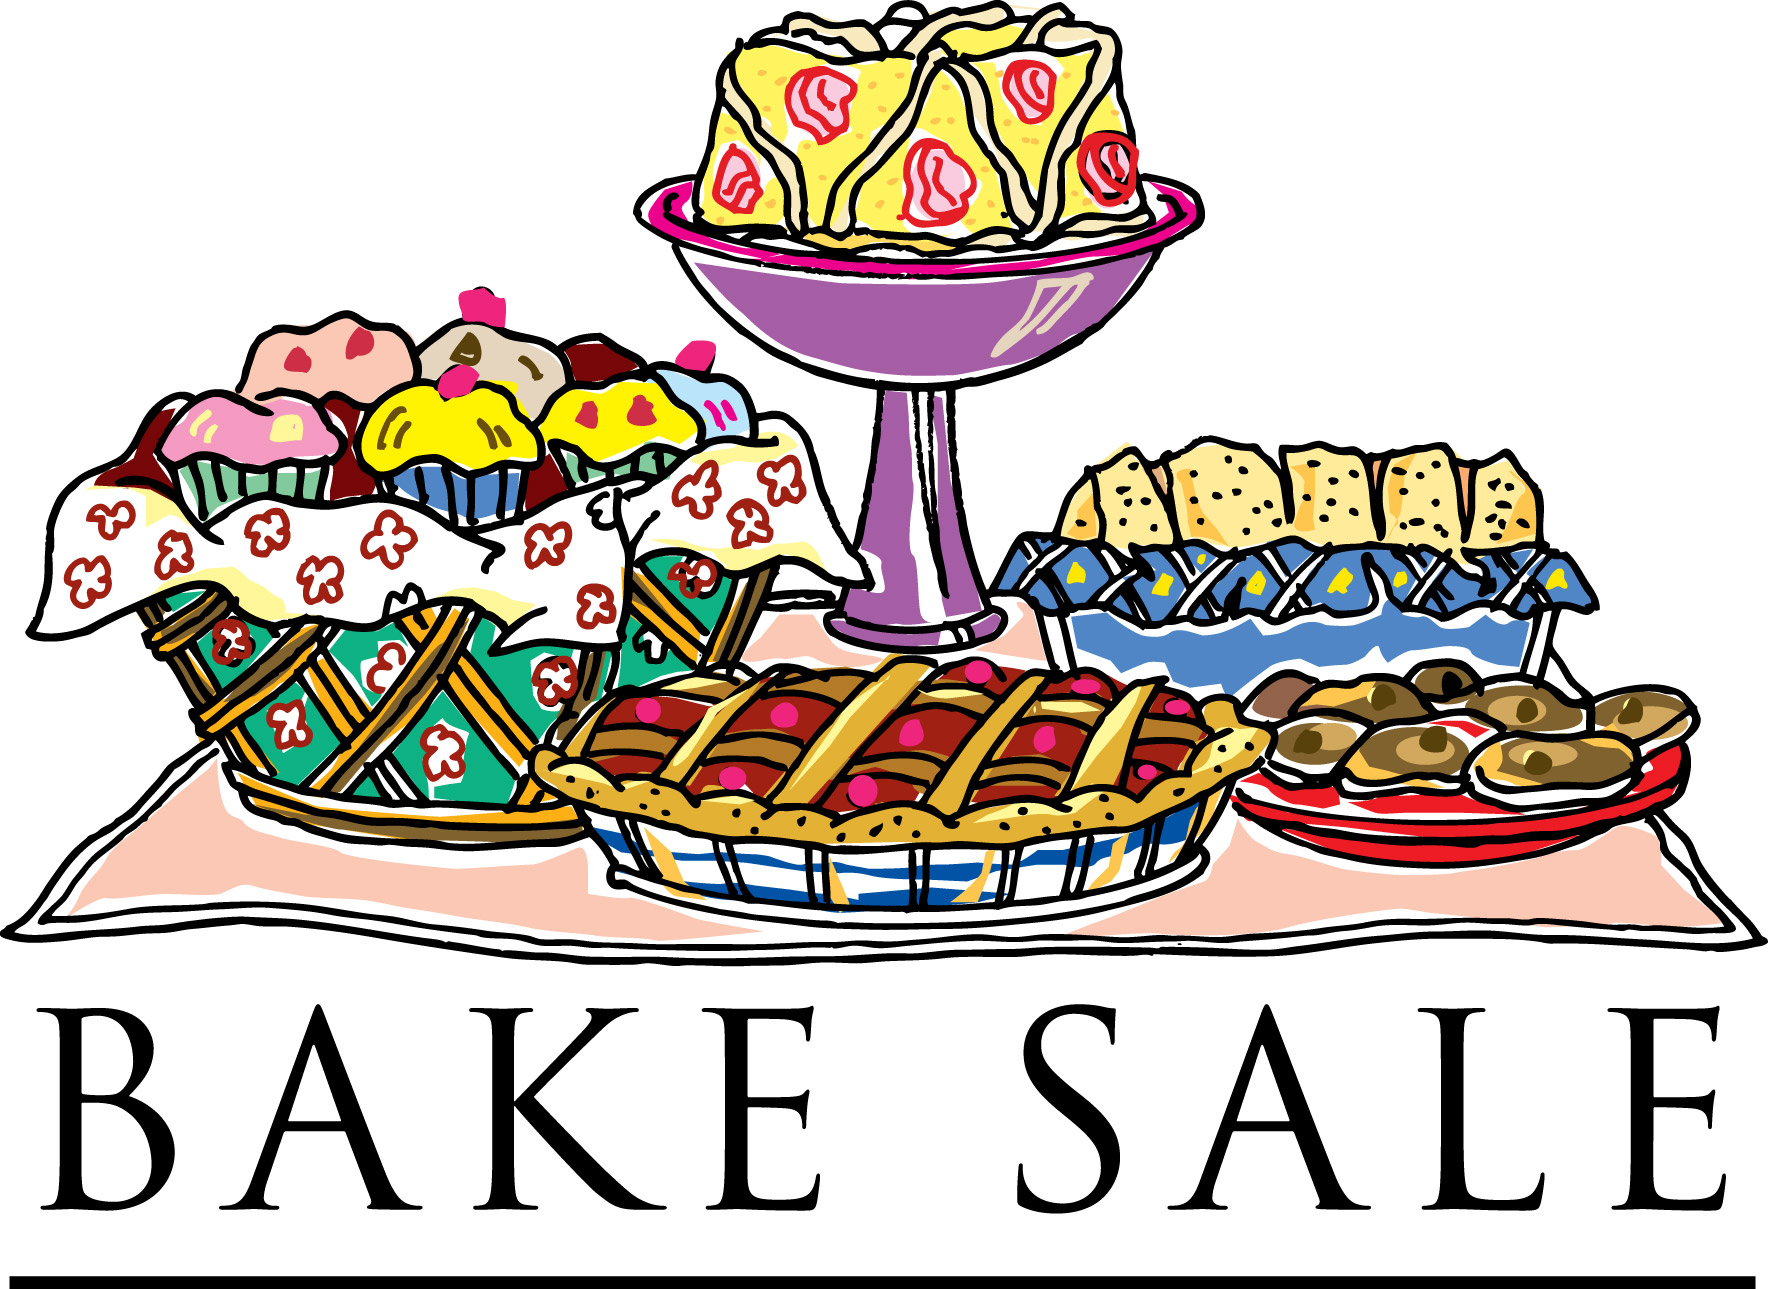 Easter BAKE SALE!! | Platte County Senior Outreach